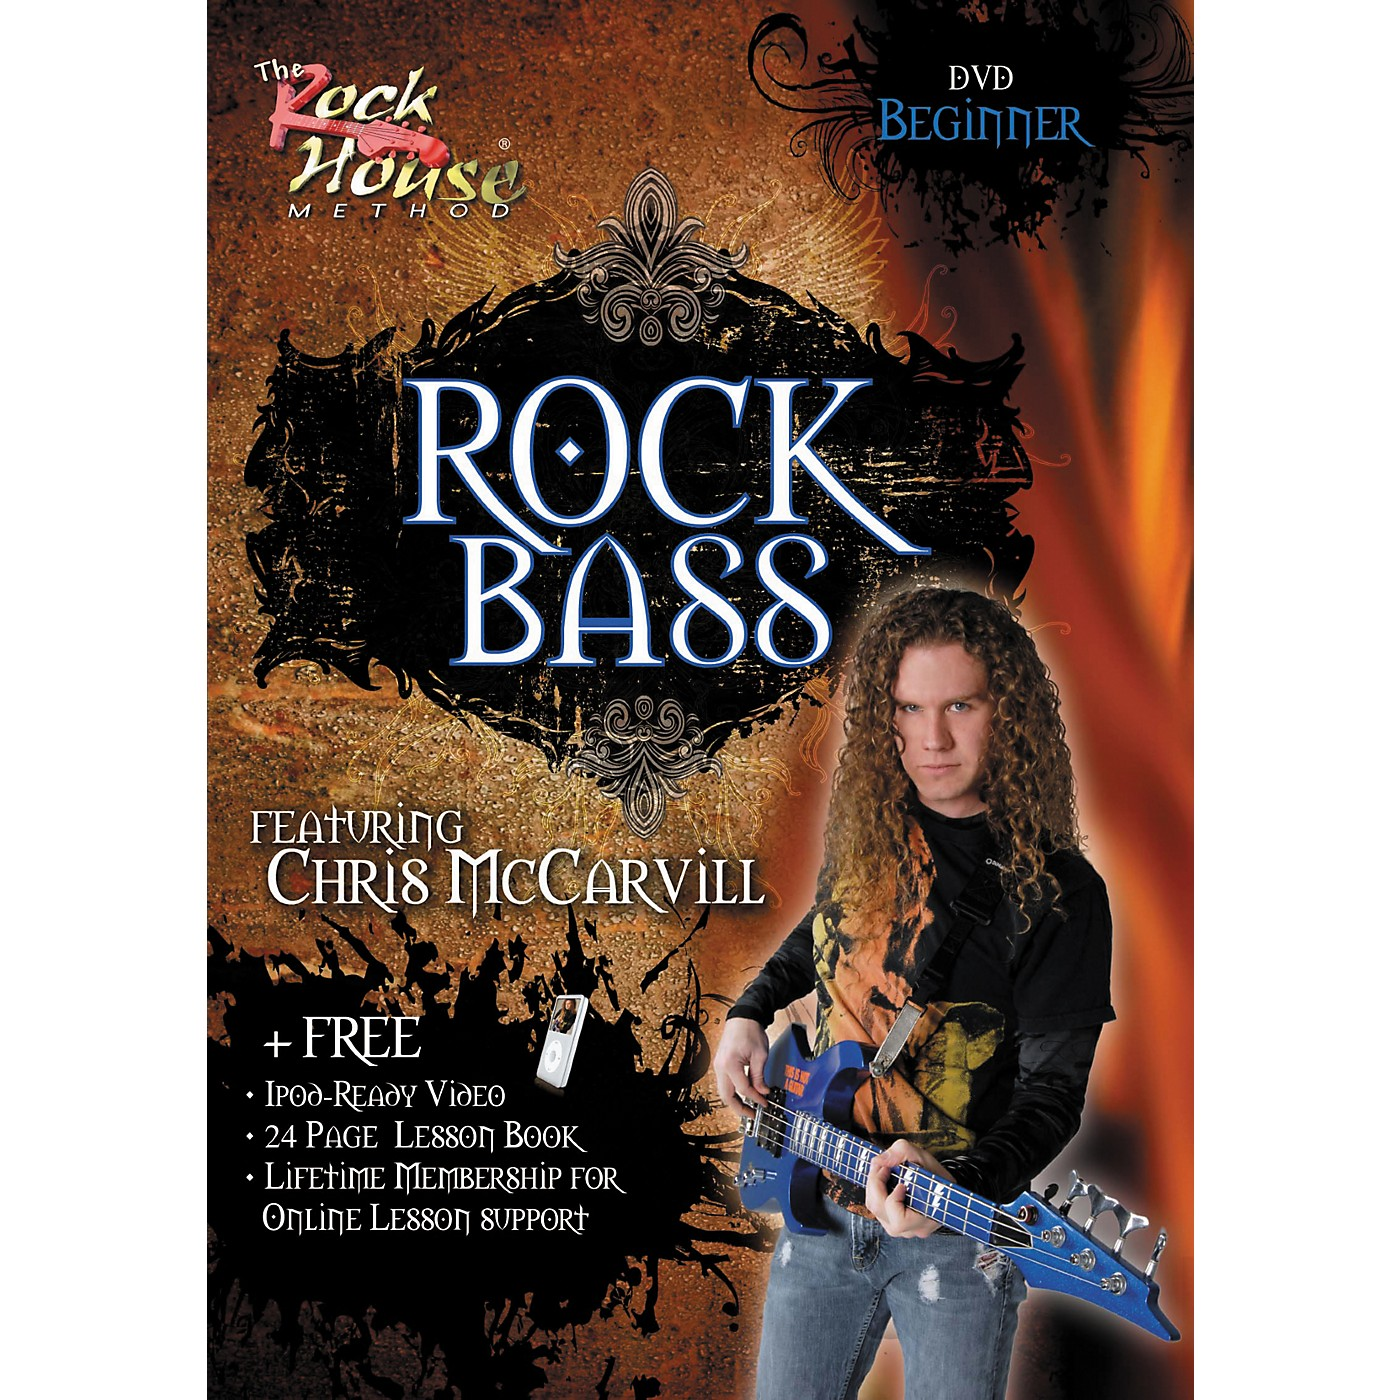 Hal Leonard Learn Rock Bass Beginner DVD thumbnail